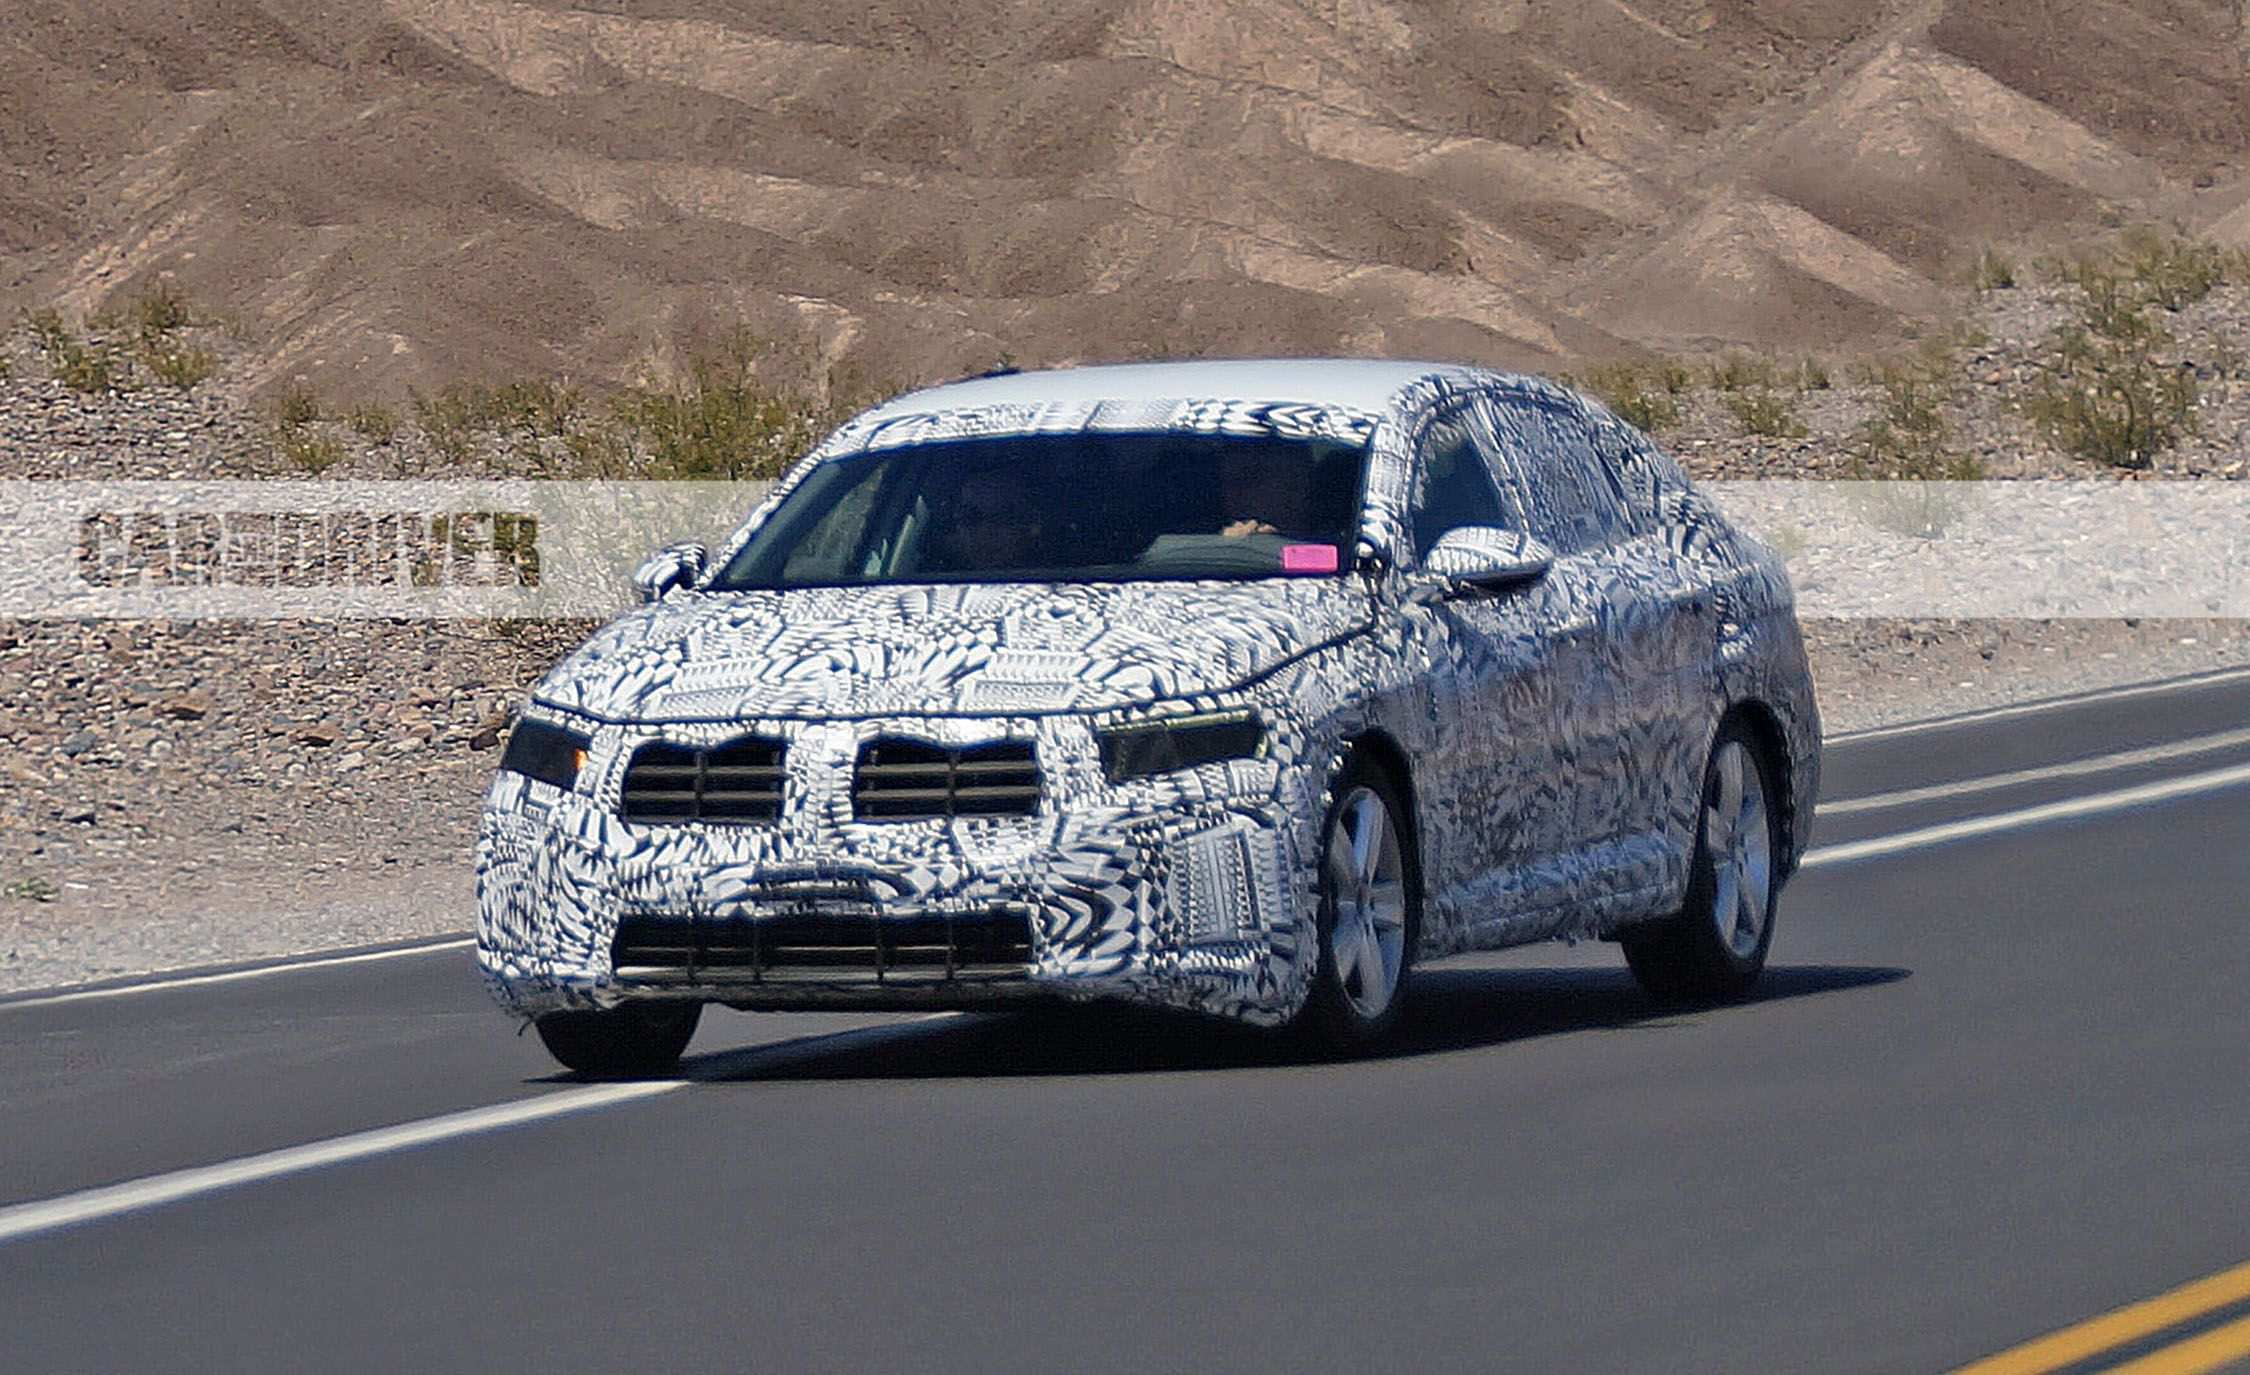 37 Great 2019 Vw Jetta Spy Shots Wallpaper with 2019 Vw Jetta Spy Shots